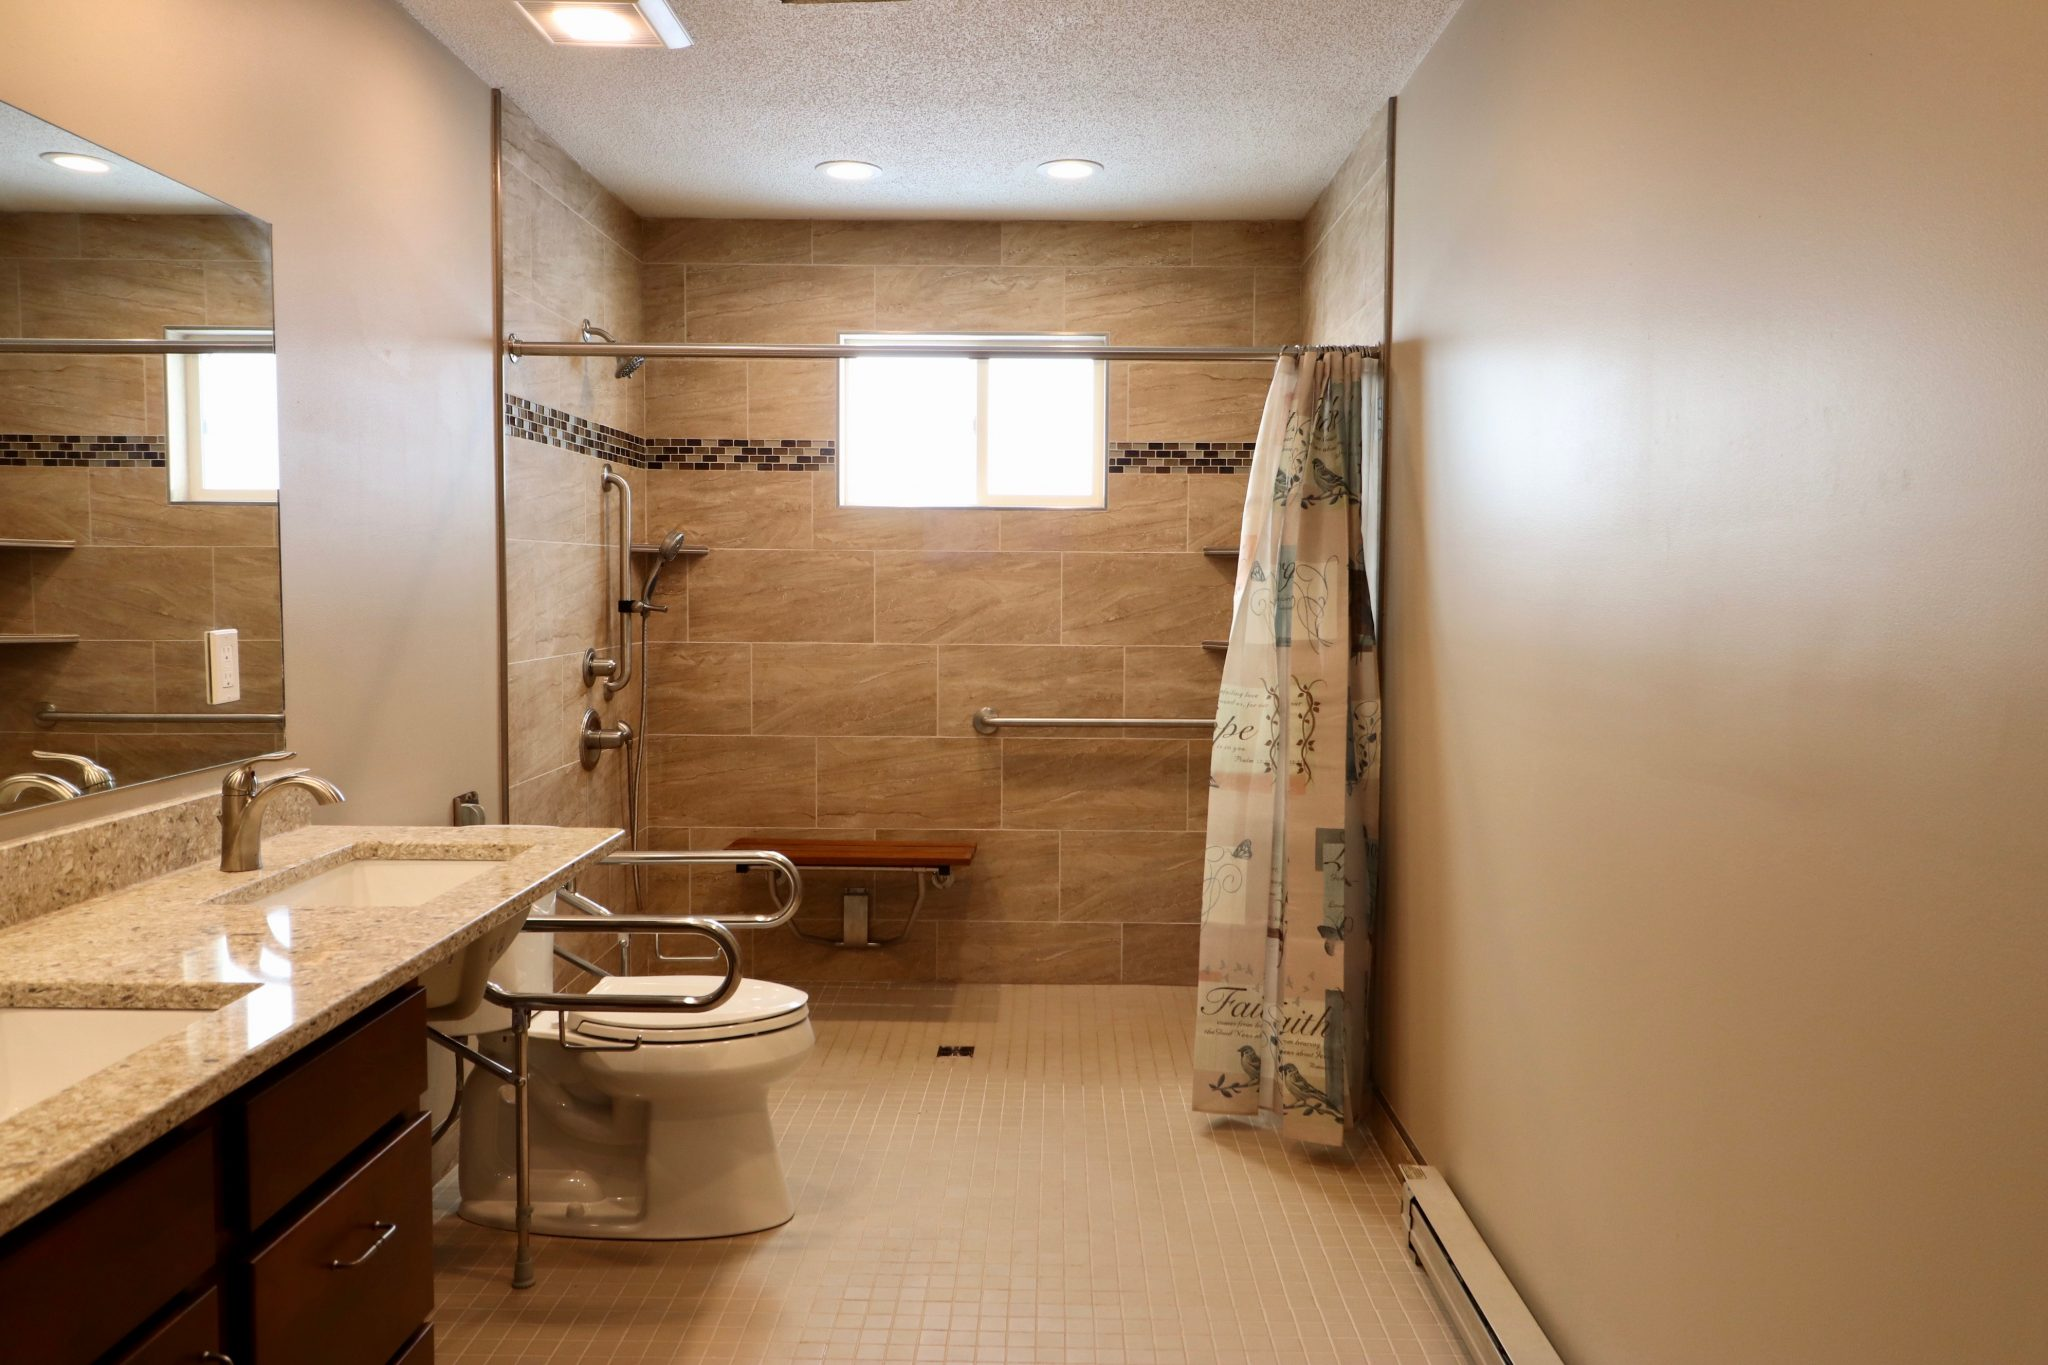 Easy Accessibility With A Roll In Shower Homeaccessremodeling Com